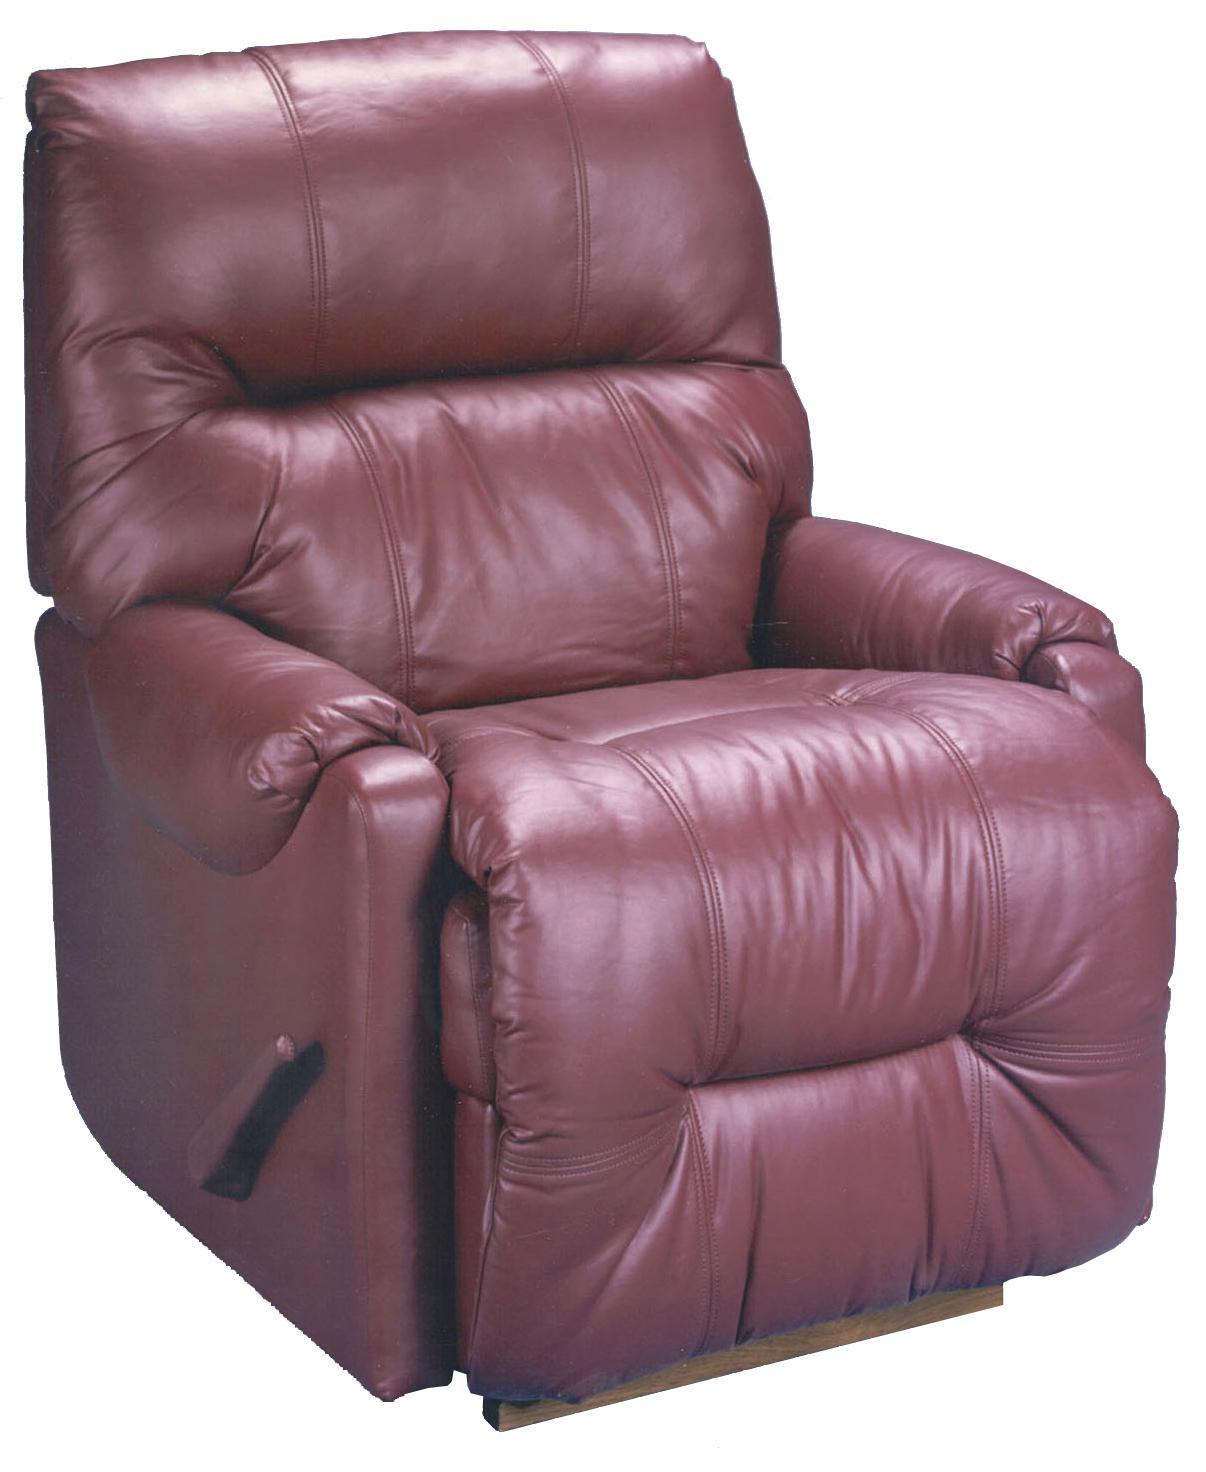 Dewey 9AW14 Swivel Rocker Recliner  by Best Home Furnishings at Baer's Furniture